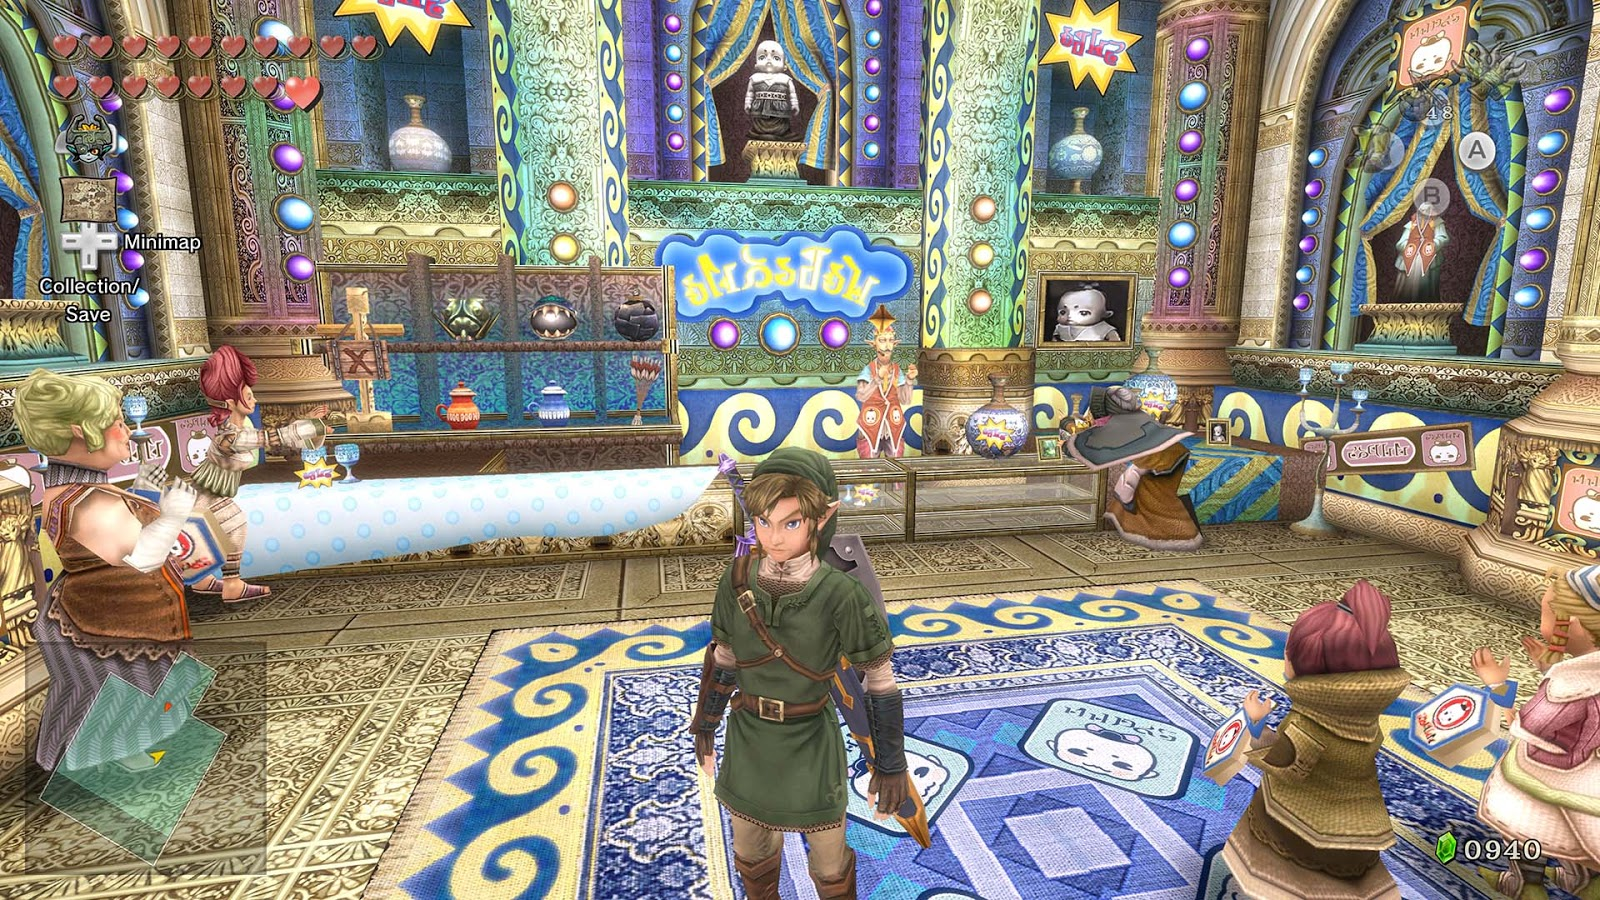 New Gameplay Enhancements Are Coming To The Legend of Zelda